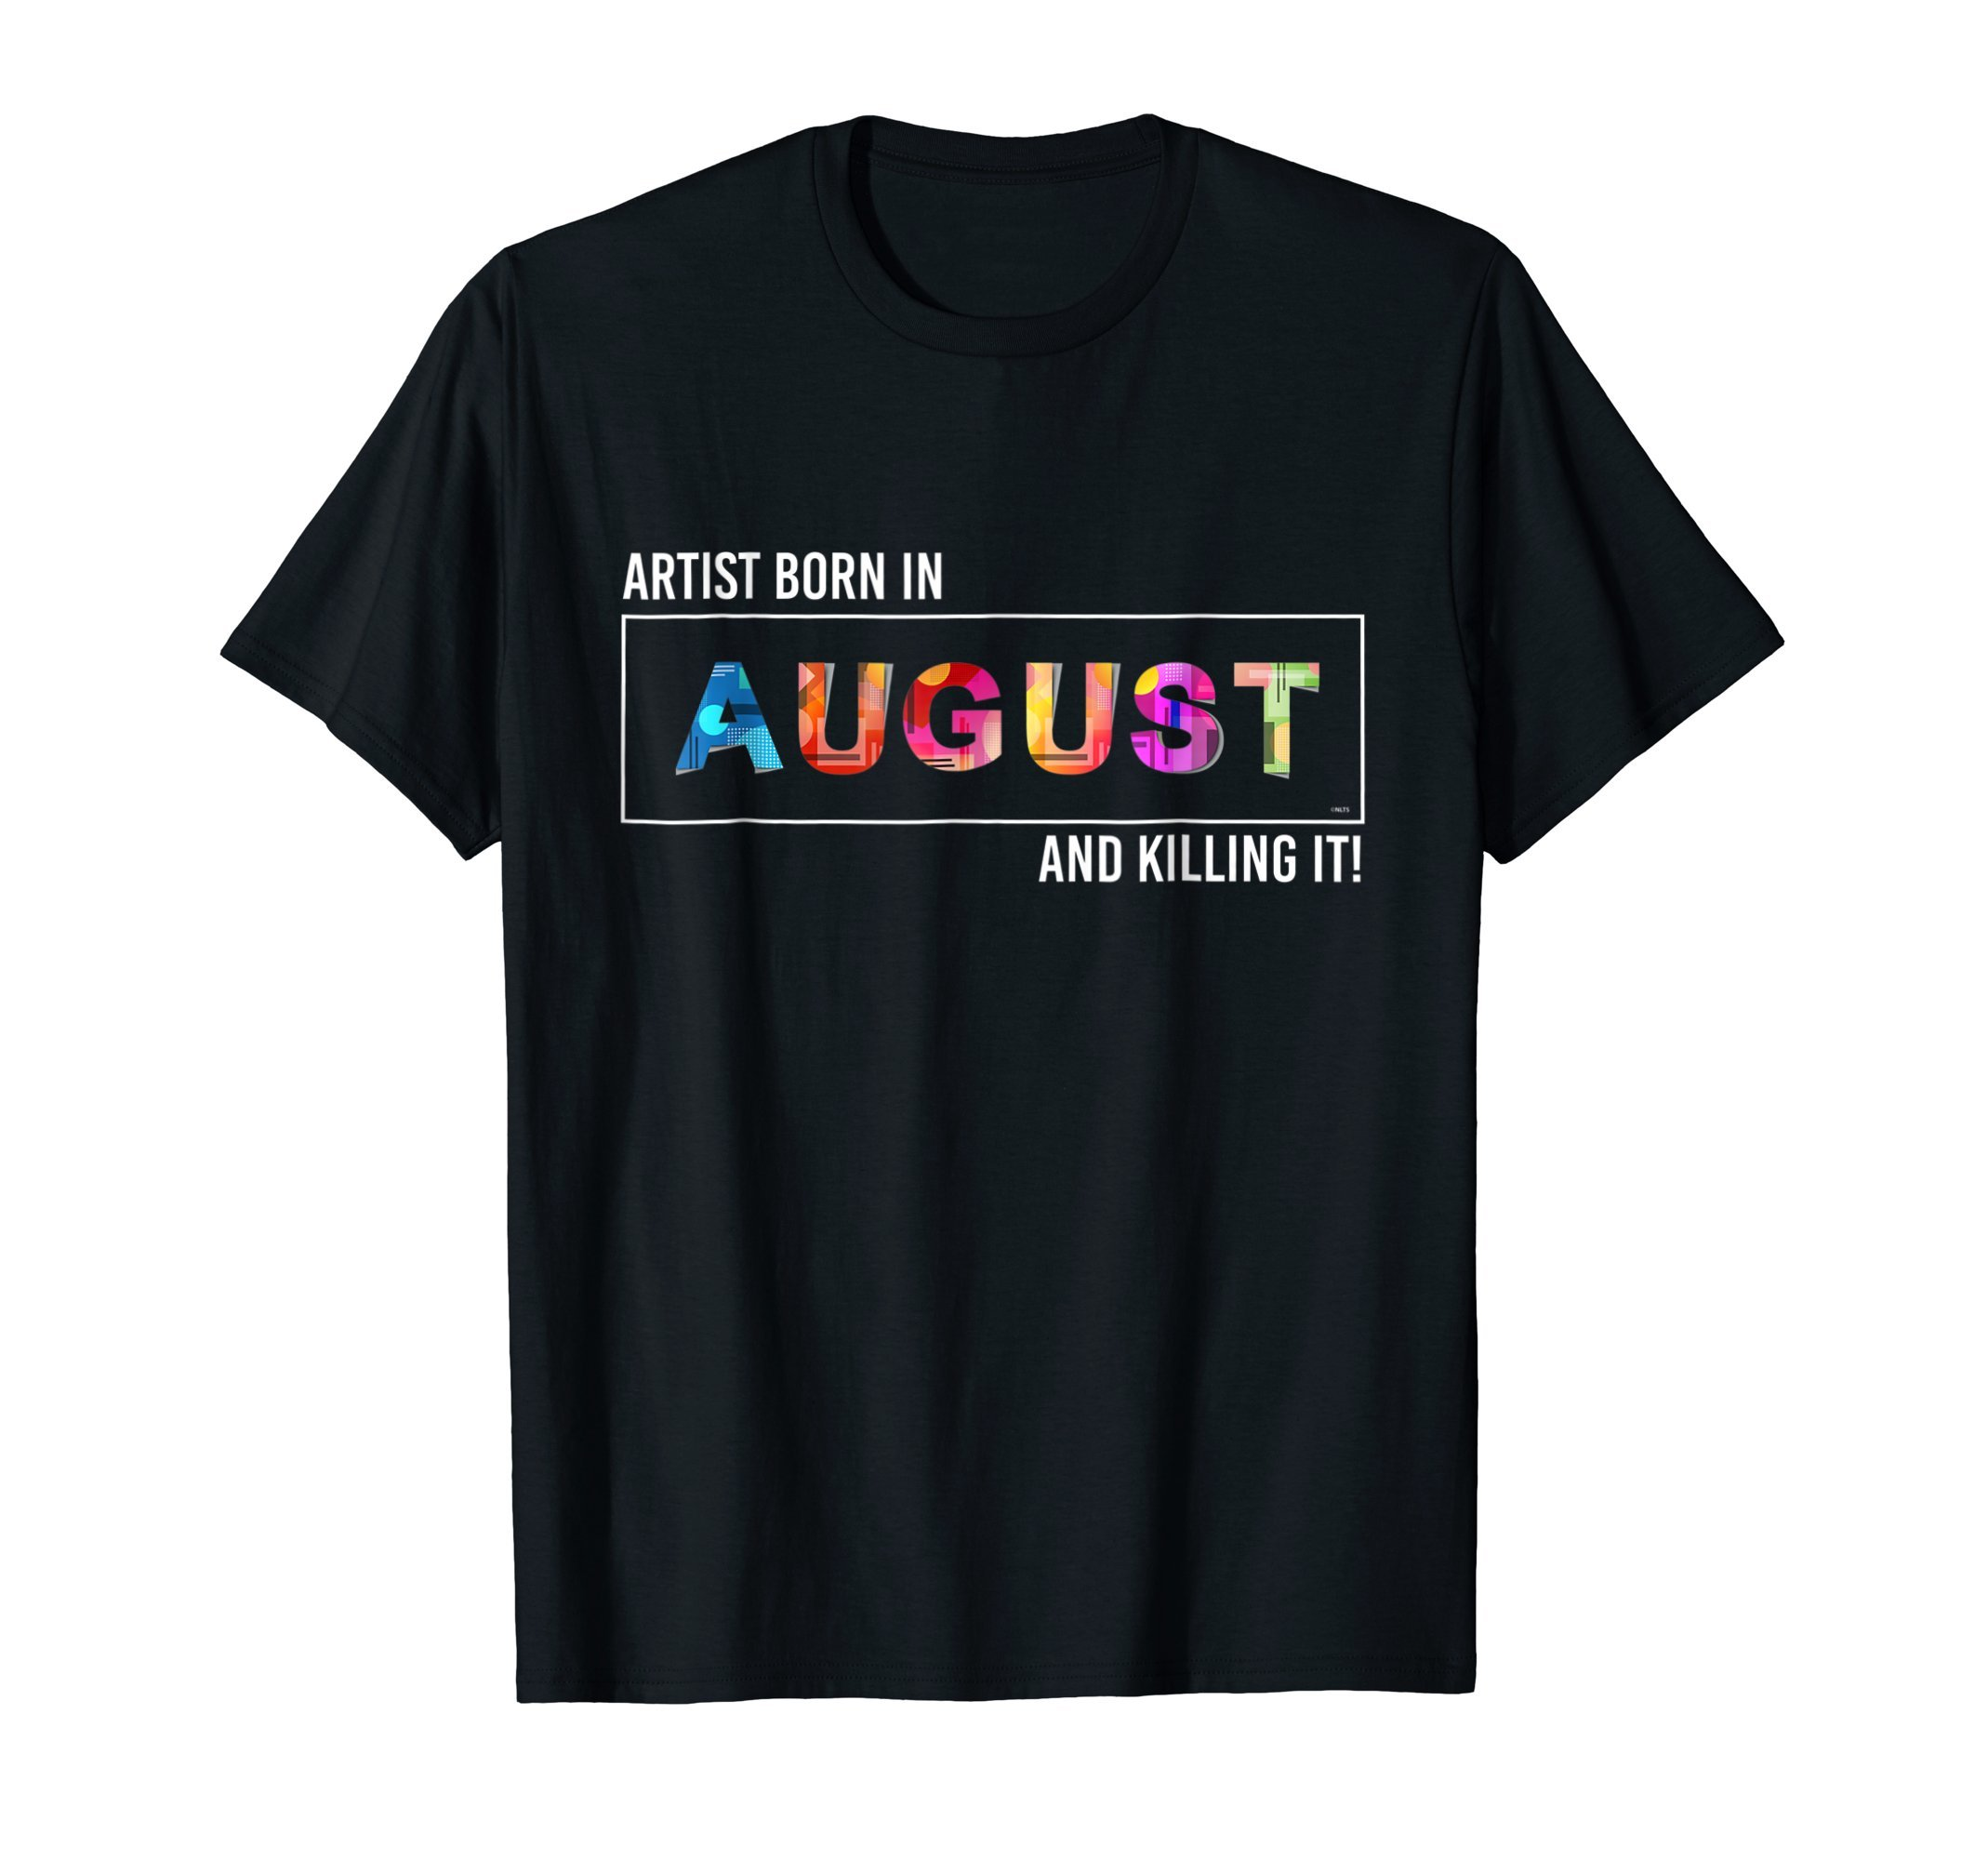 Artist-born-in-August-and-killing-it-T-Shirt-Shirt-Tee-Gift